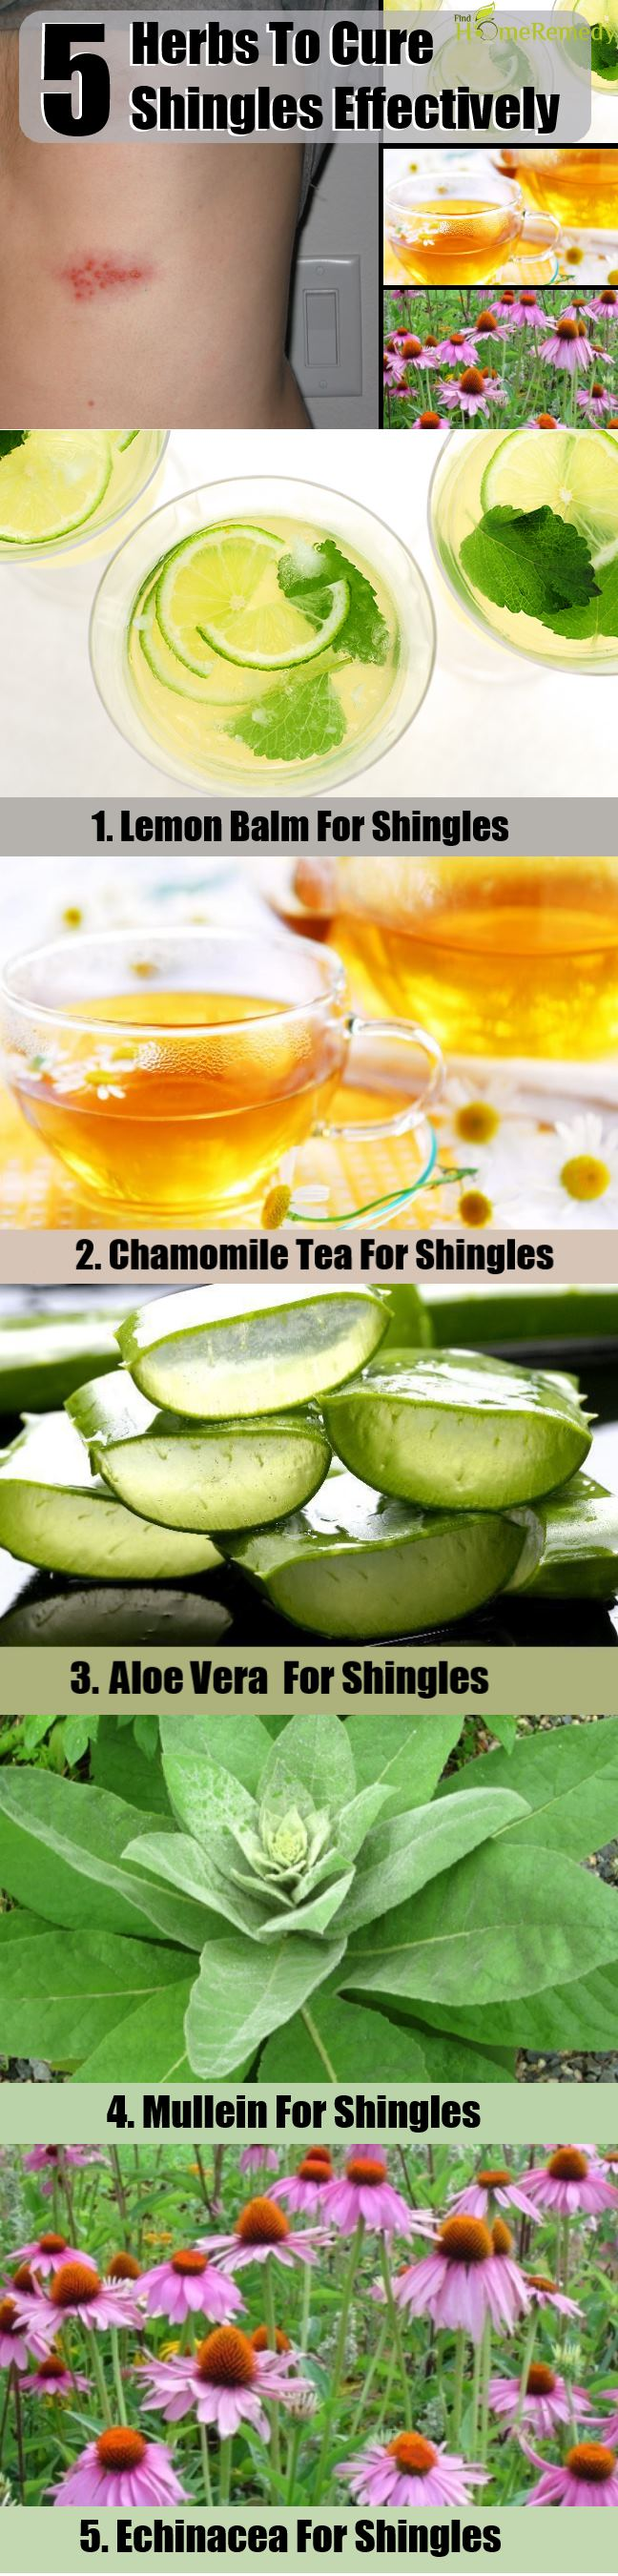 5 Herbs To Cure Shingles Effectively